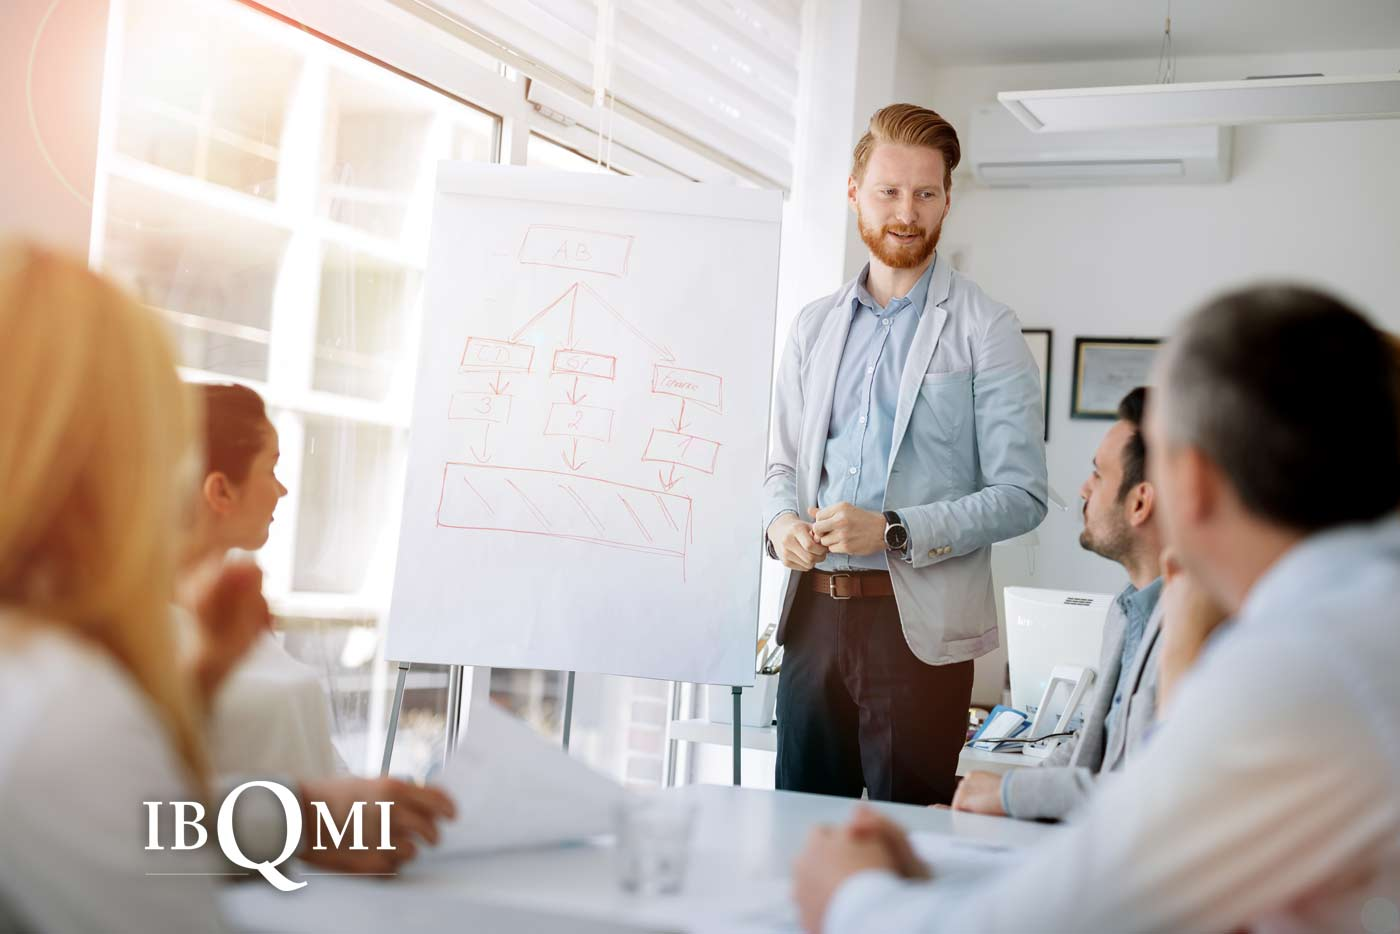 Why ibqmi lean project management is the way to go in your next project